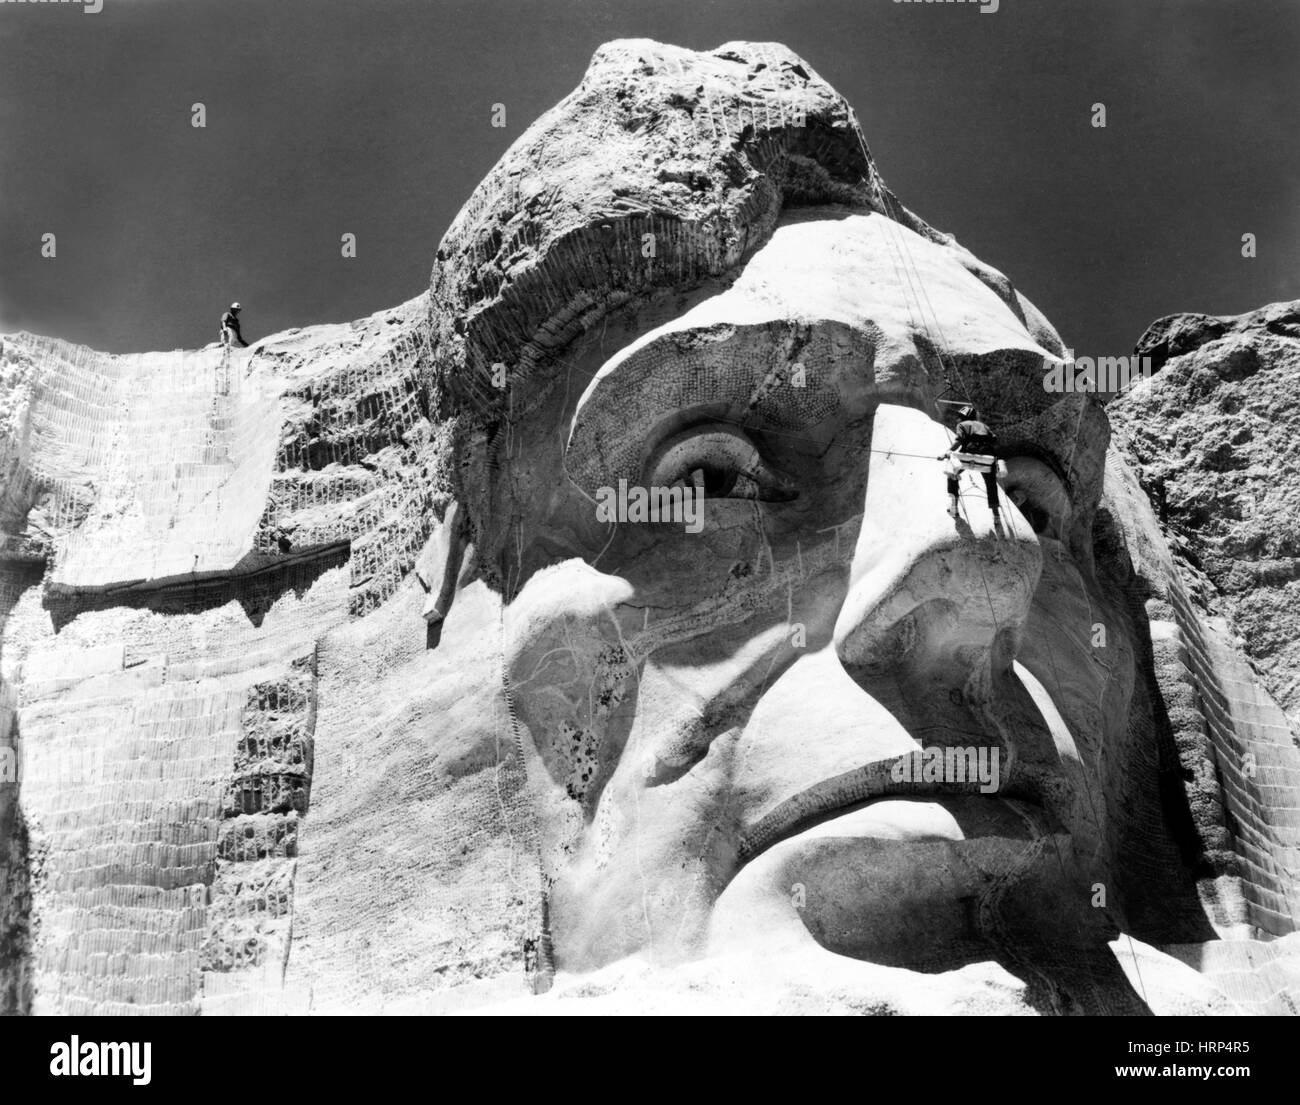 Mount Rushmore Sculpture Maintenance - Stock Image